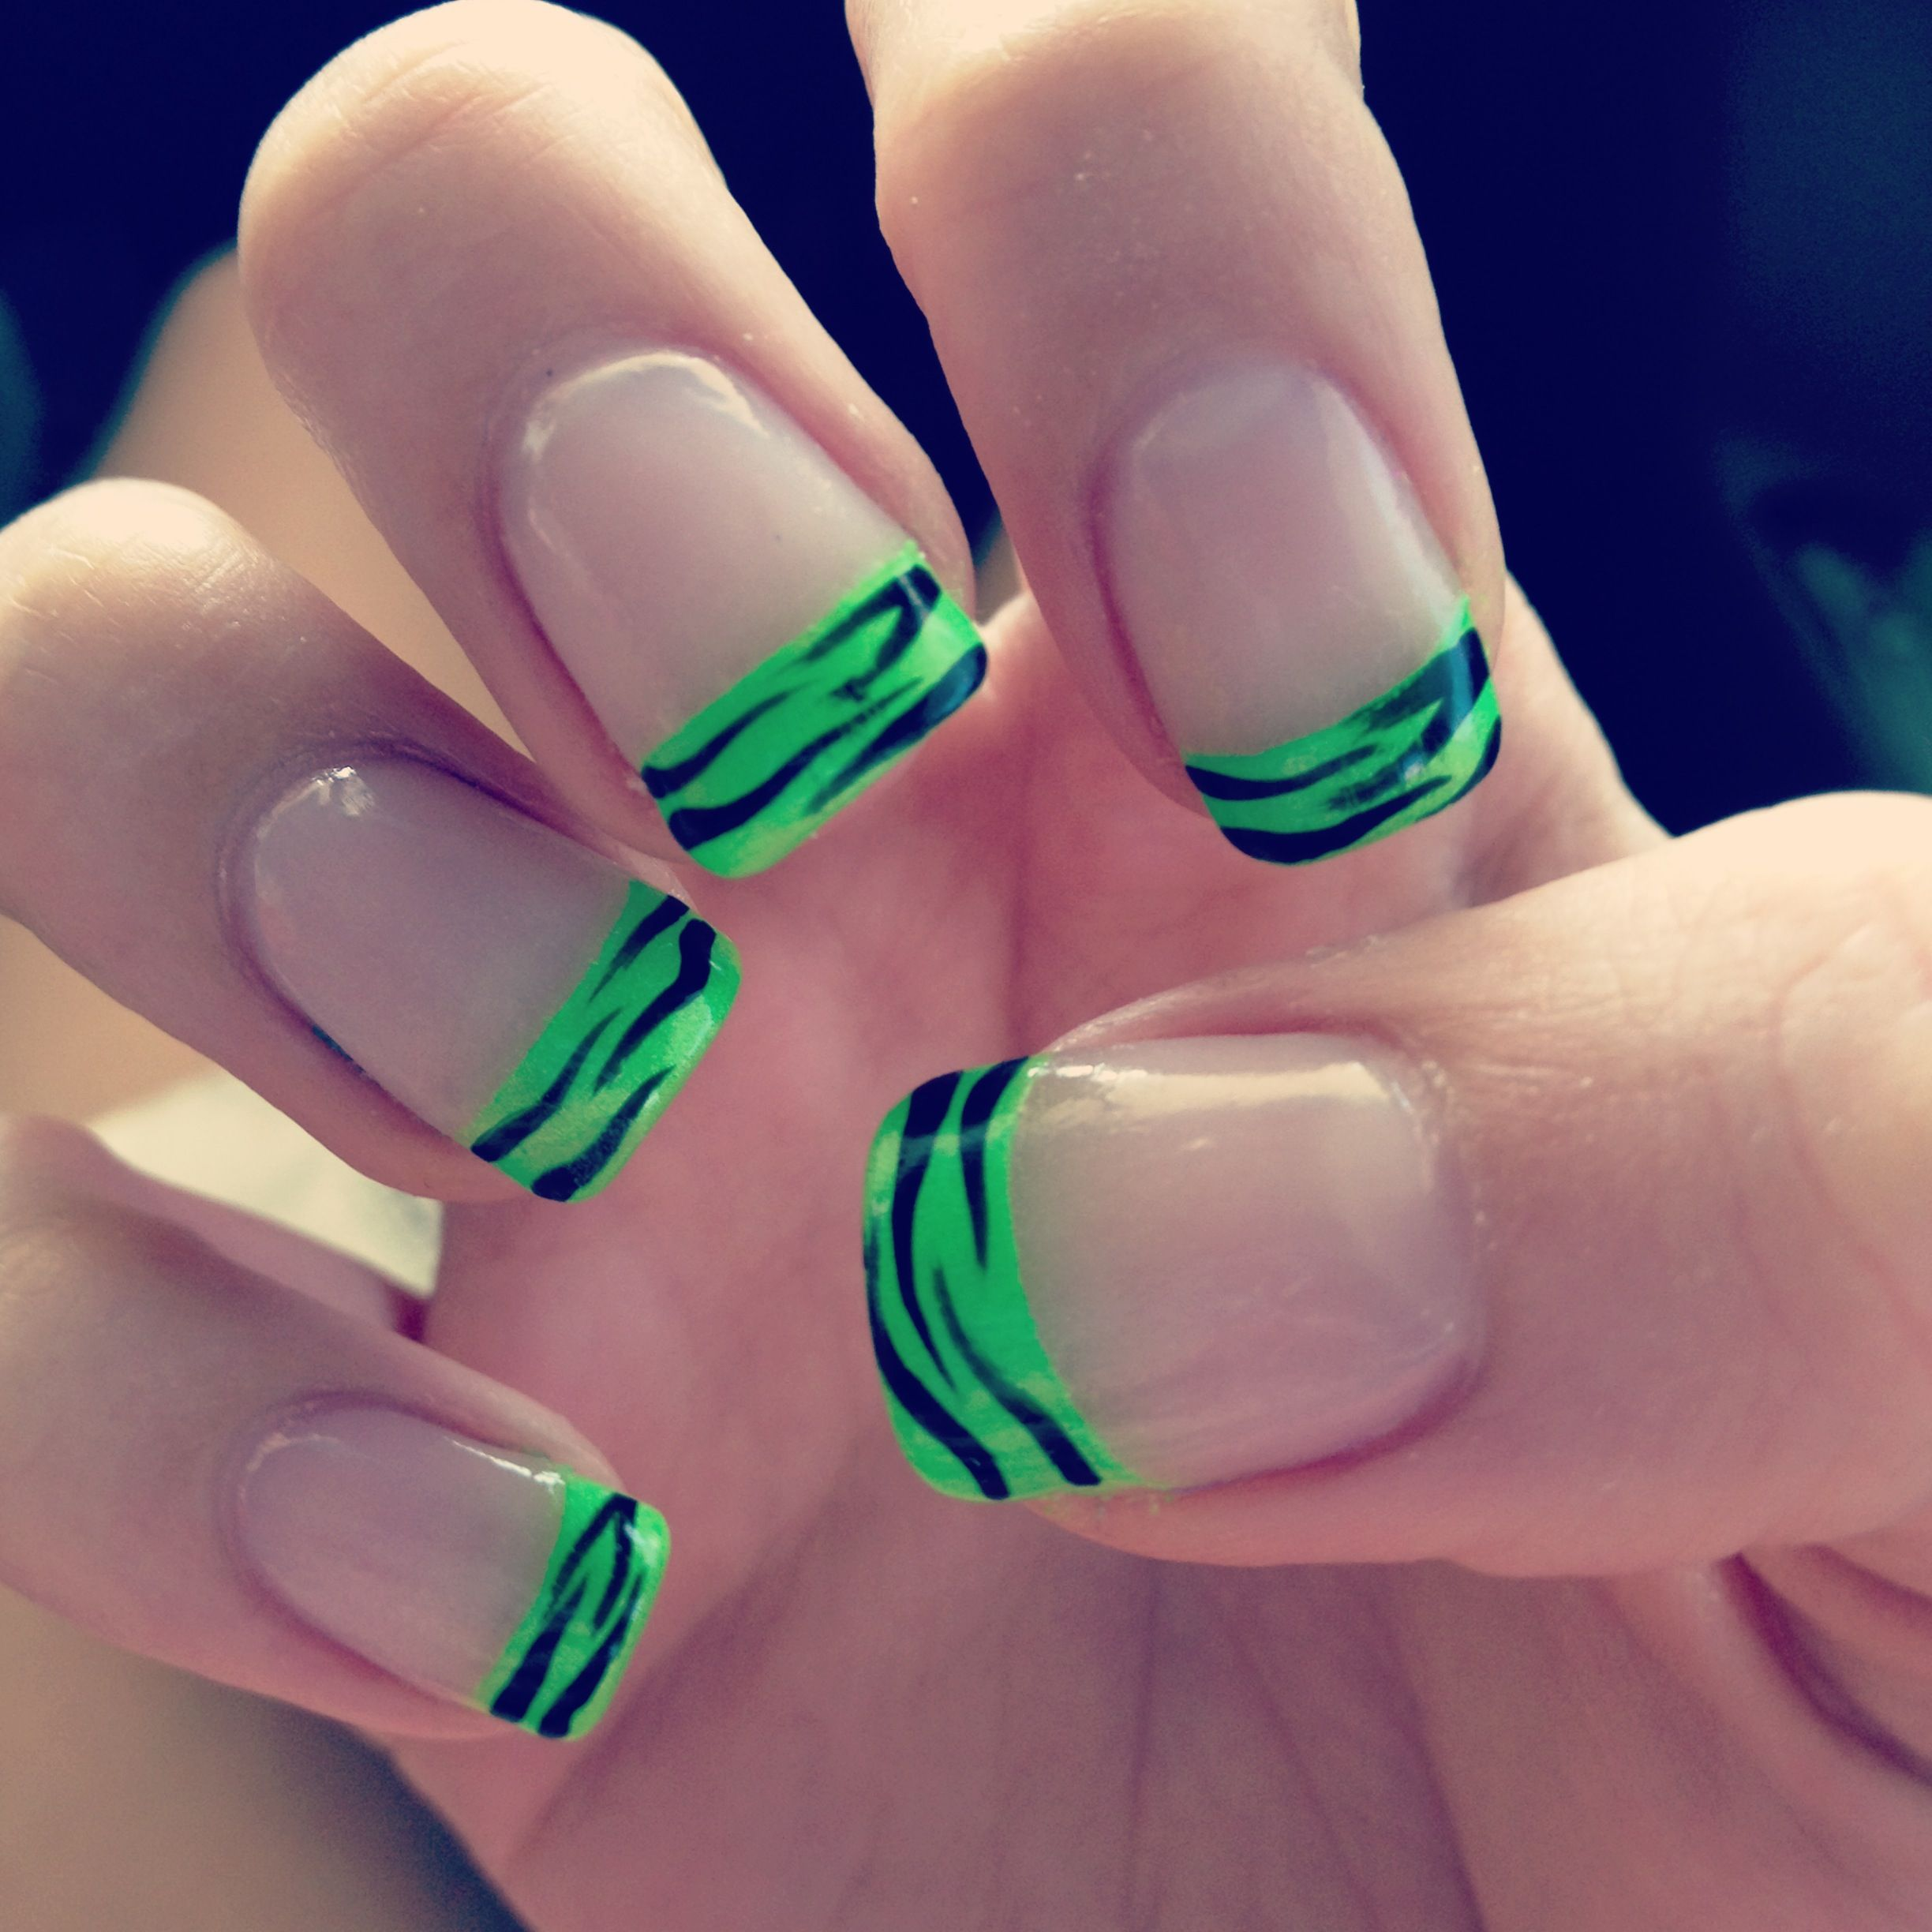 Neon French Tip Nail Designs: Neon Green Zebra French Manicure!